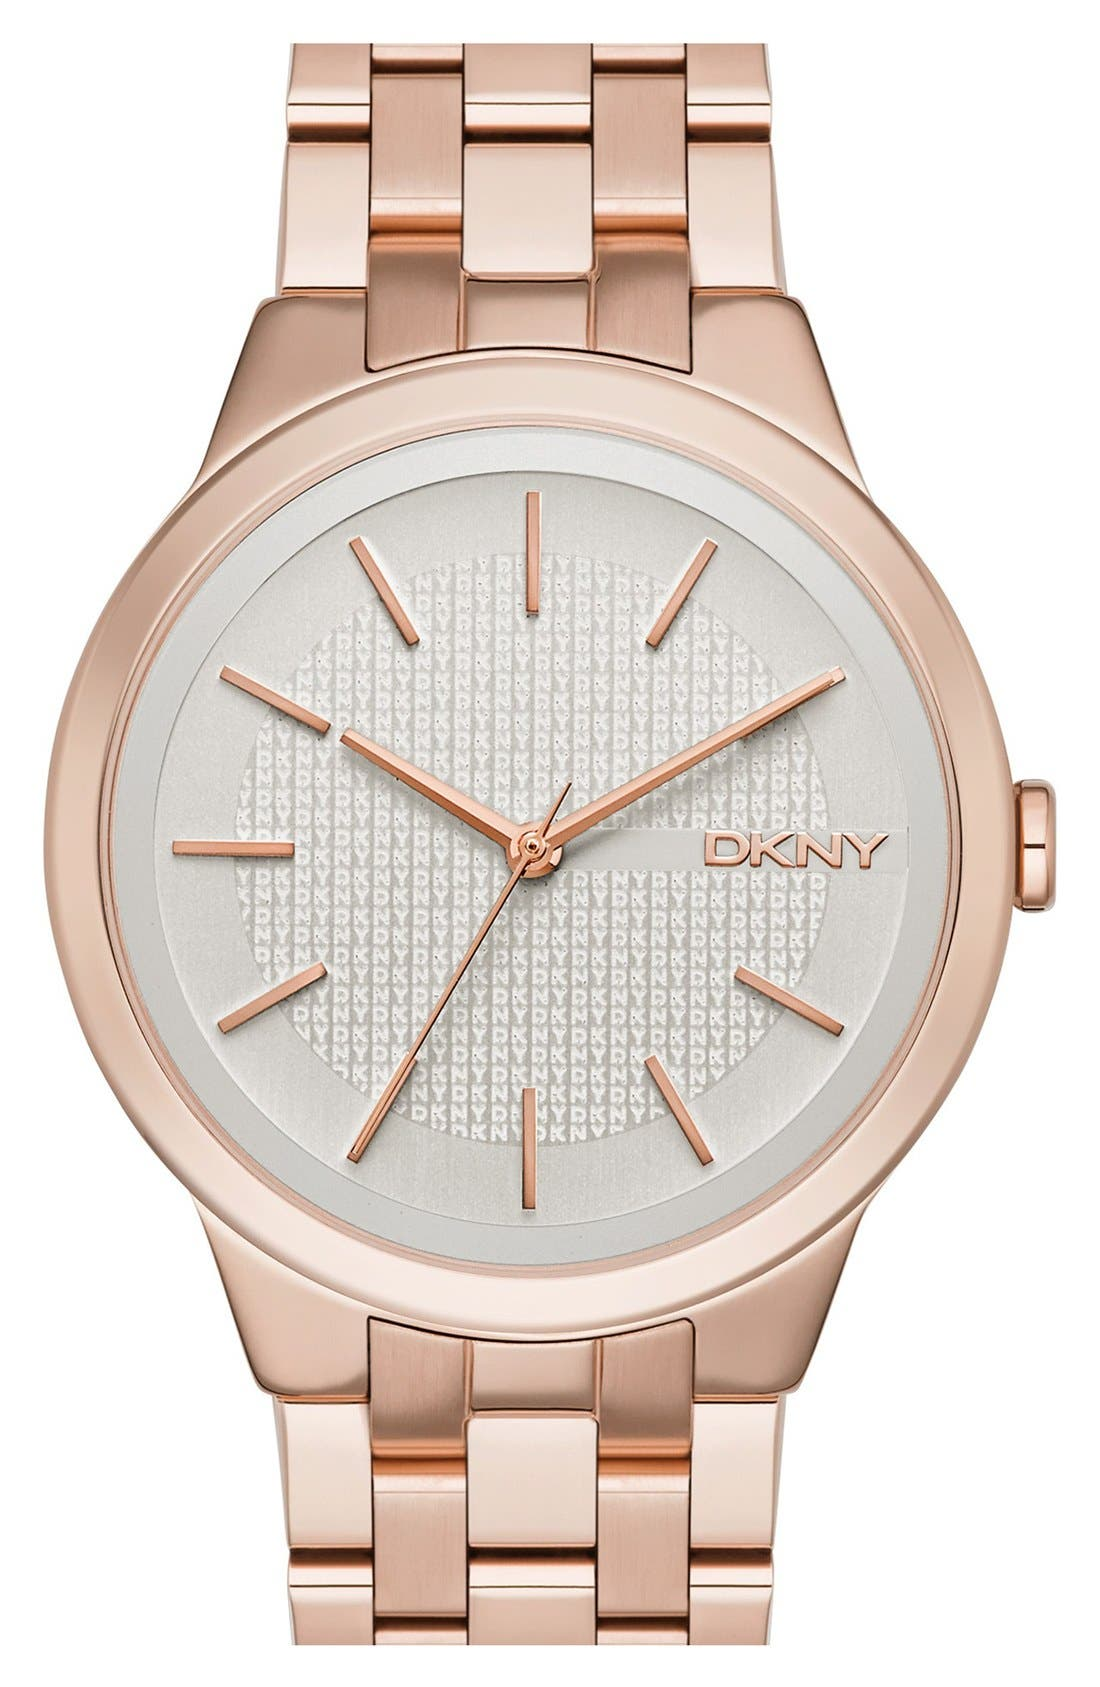 Main Image - DKNY 'Park Slope' Bracelet Watch, 36mm